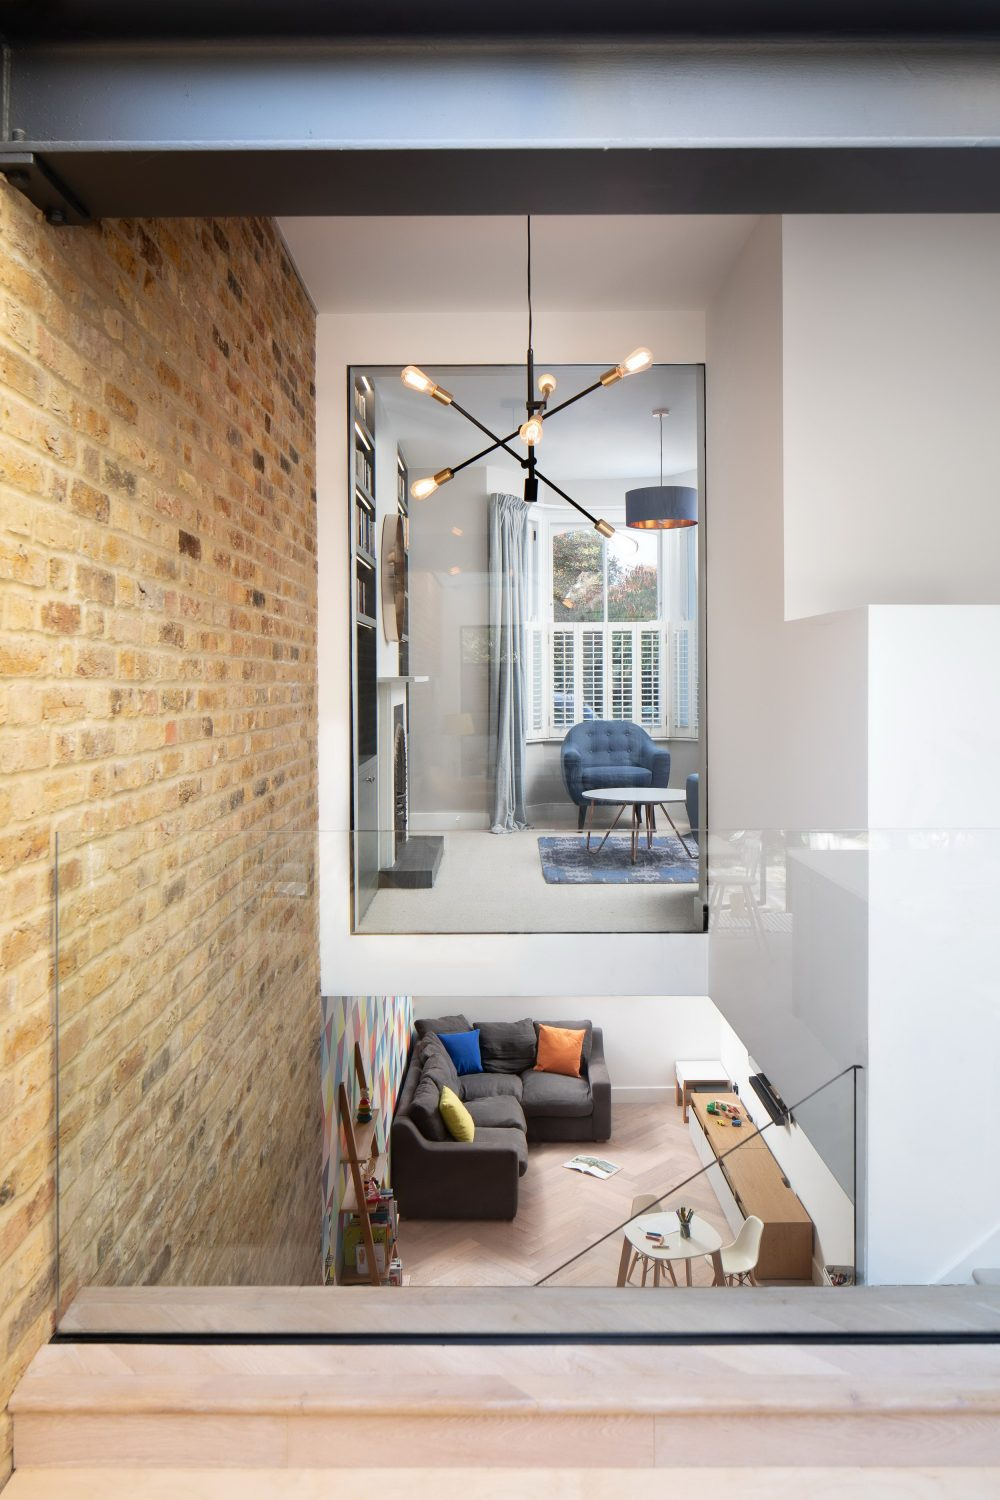 Chivalry Road by Sketch Architects